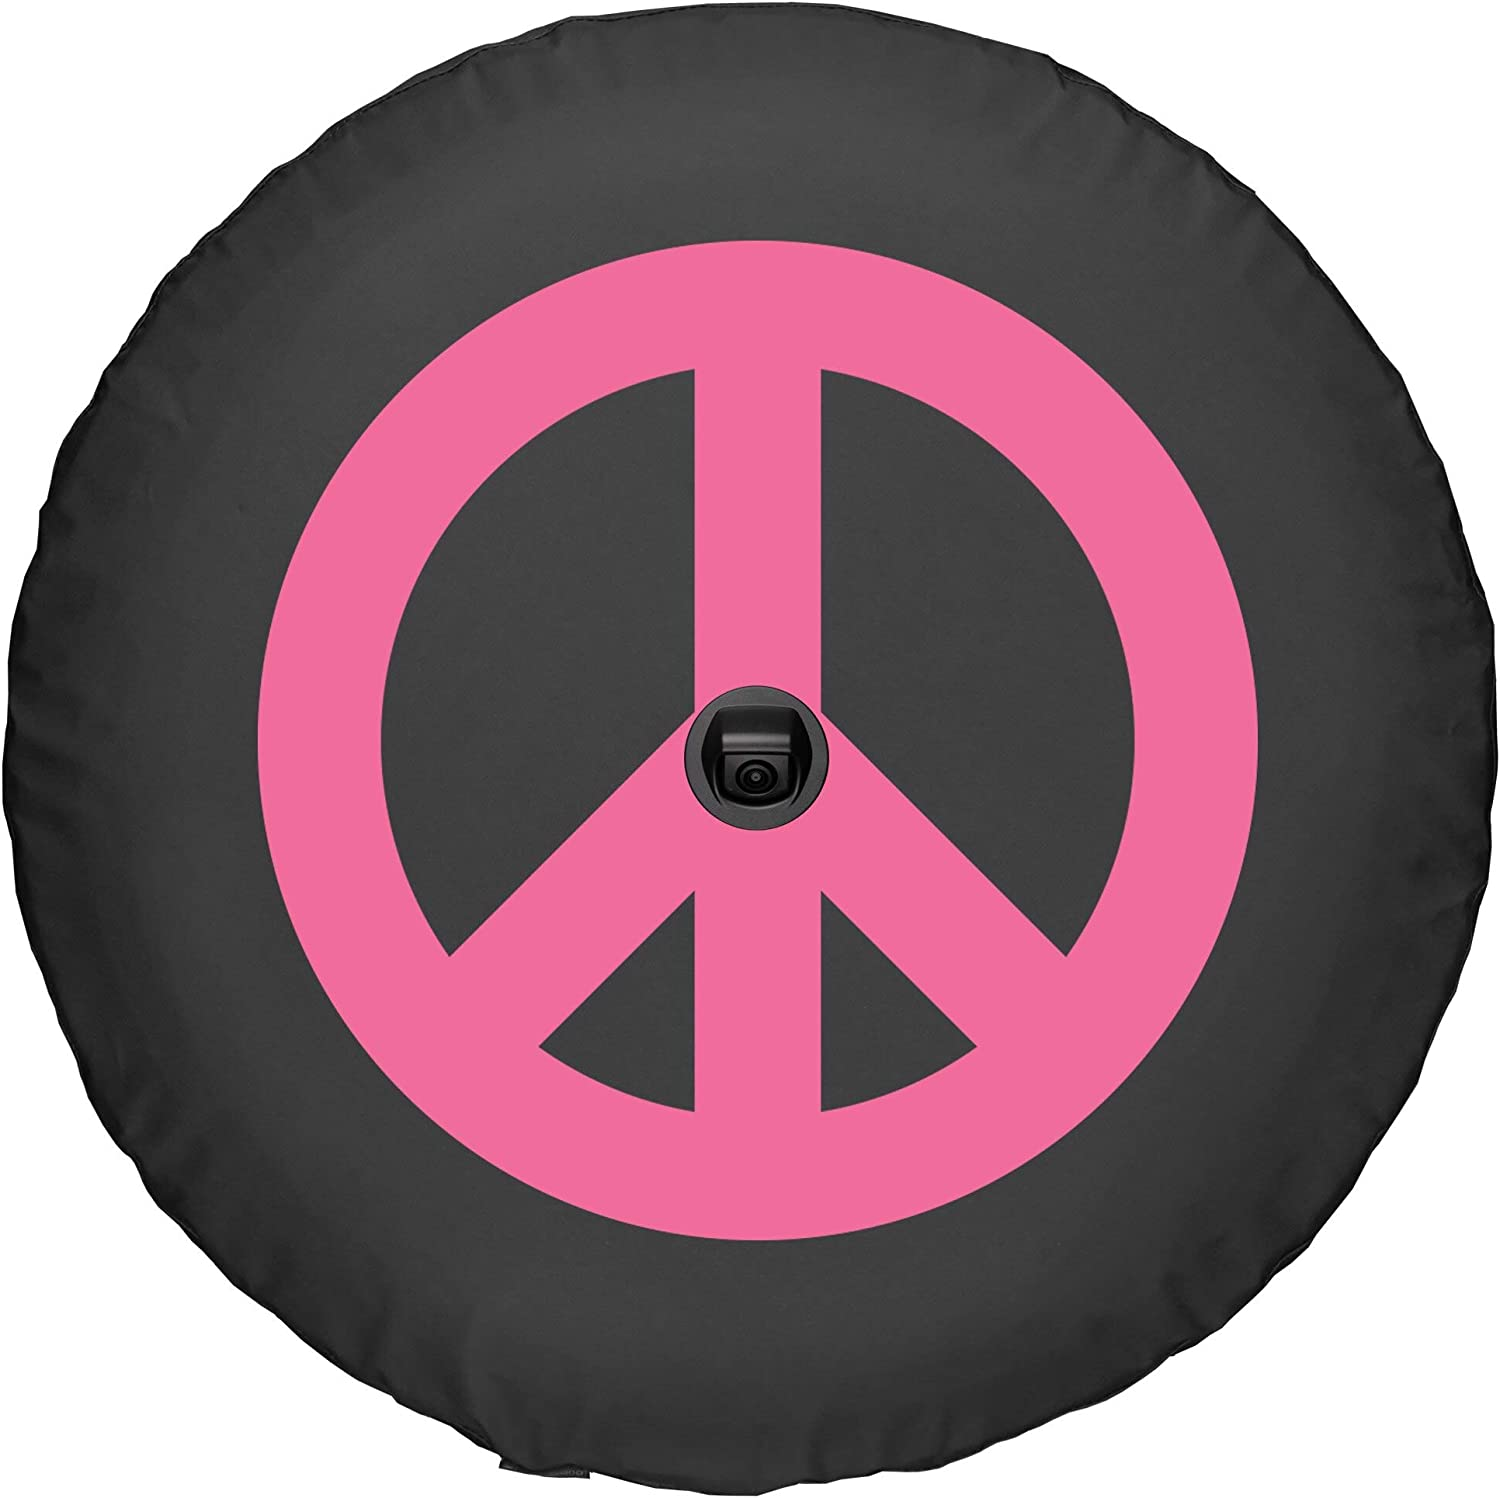 Made in The USA - Pink Camo Star Boomerang 32 Soft JL Tire Cover for use with 2018-2019 Jeep Wrangler JL Sport /& Sahara with Back-up Camera